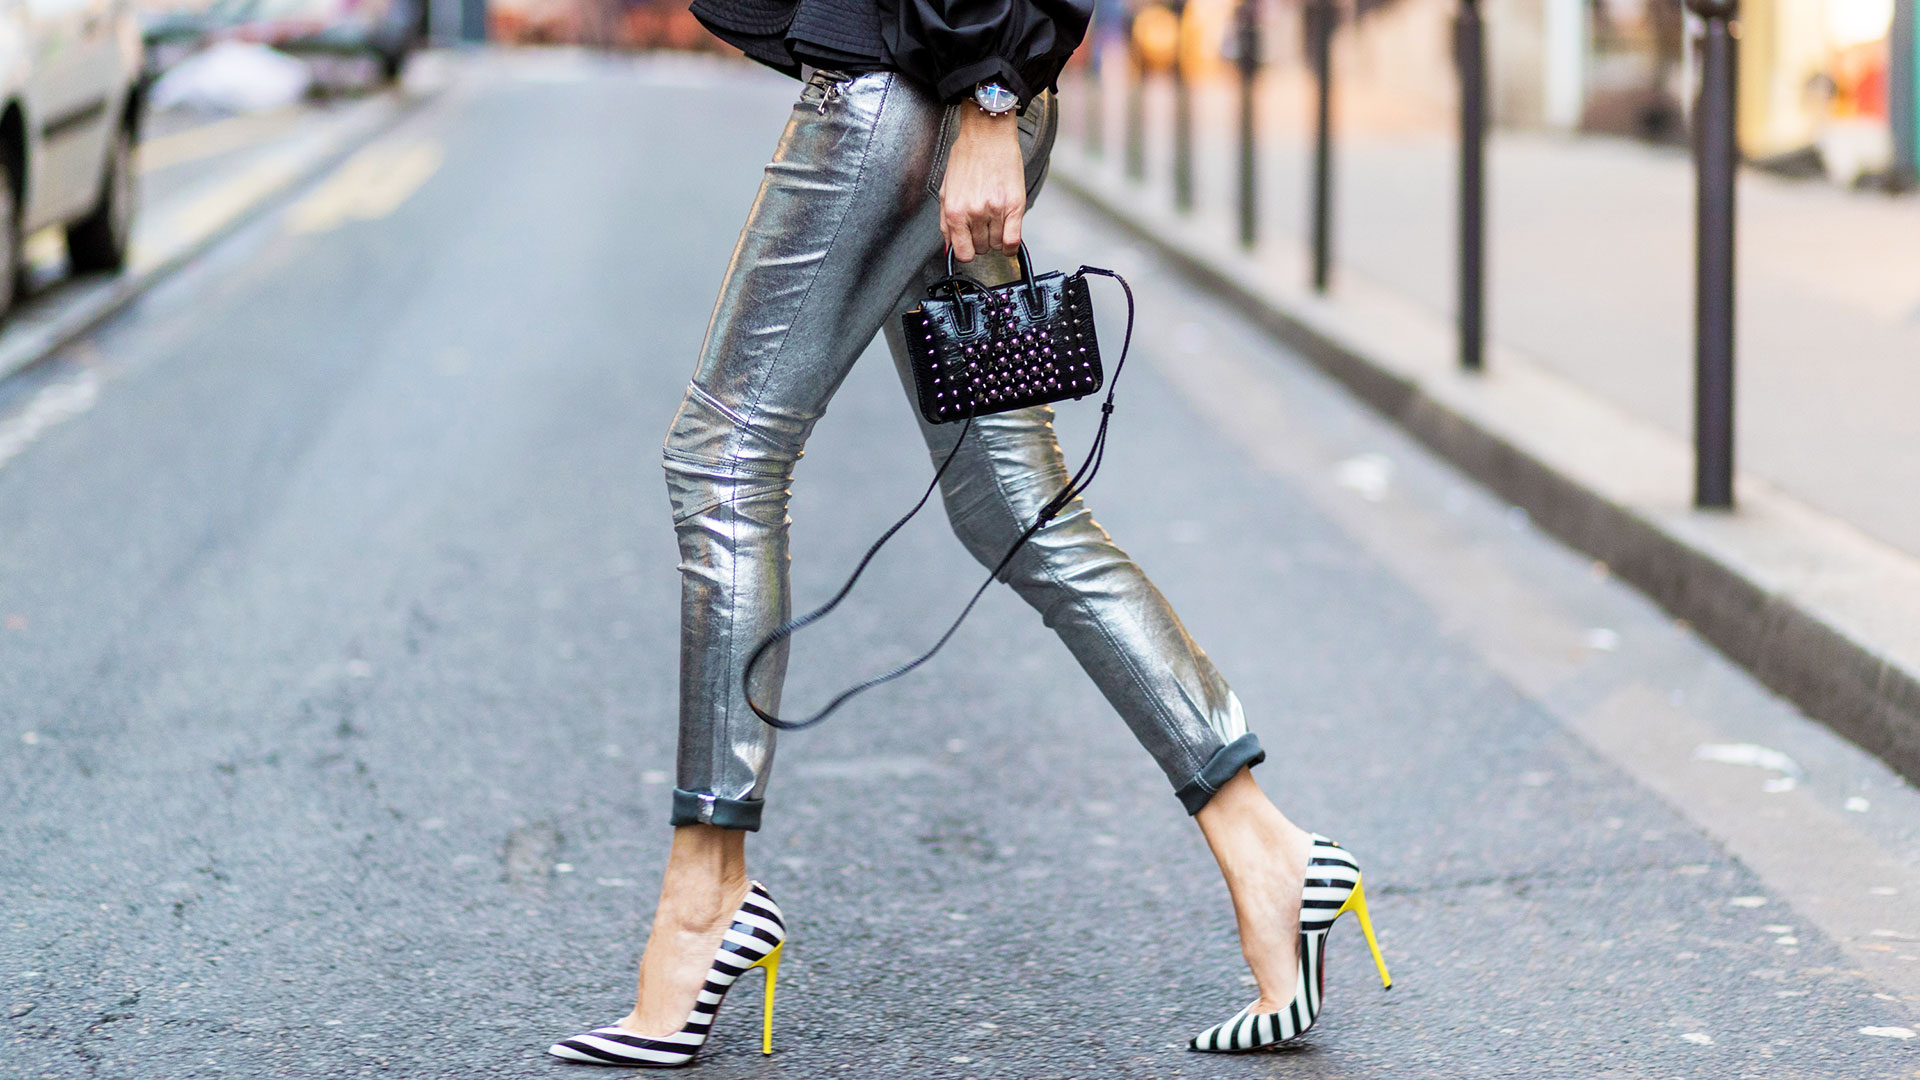 Woman in Metallic Jeans